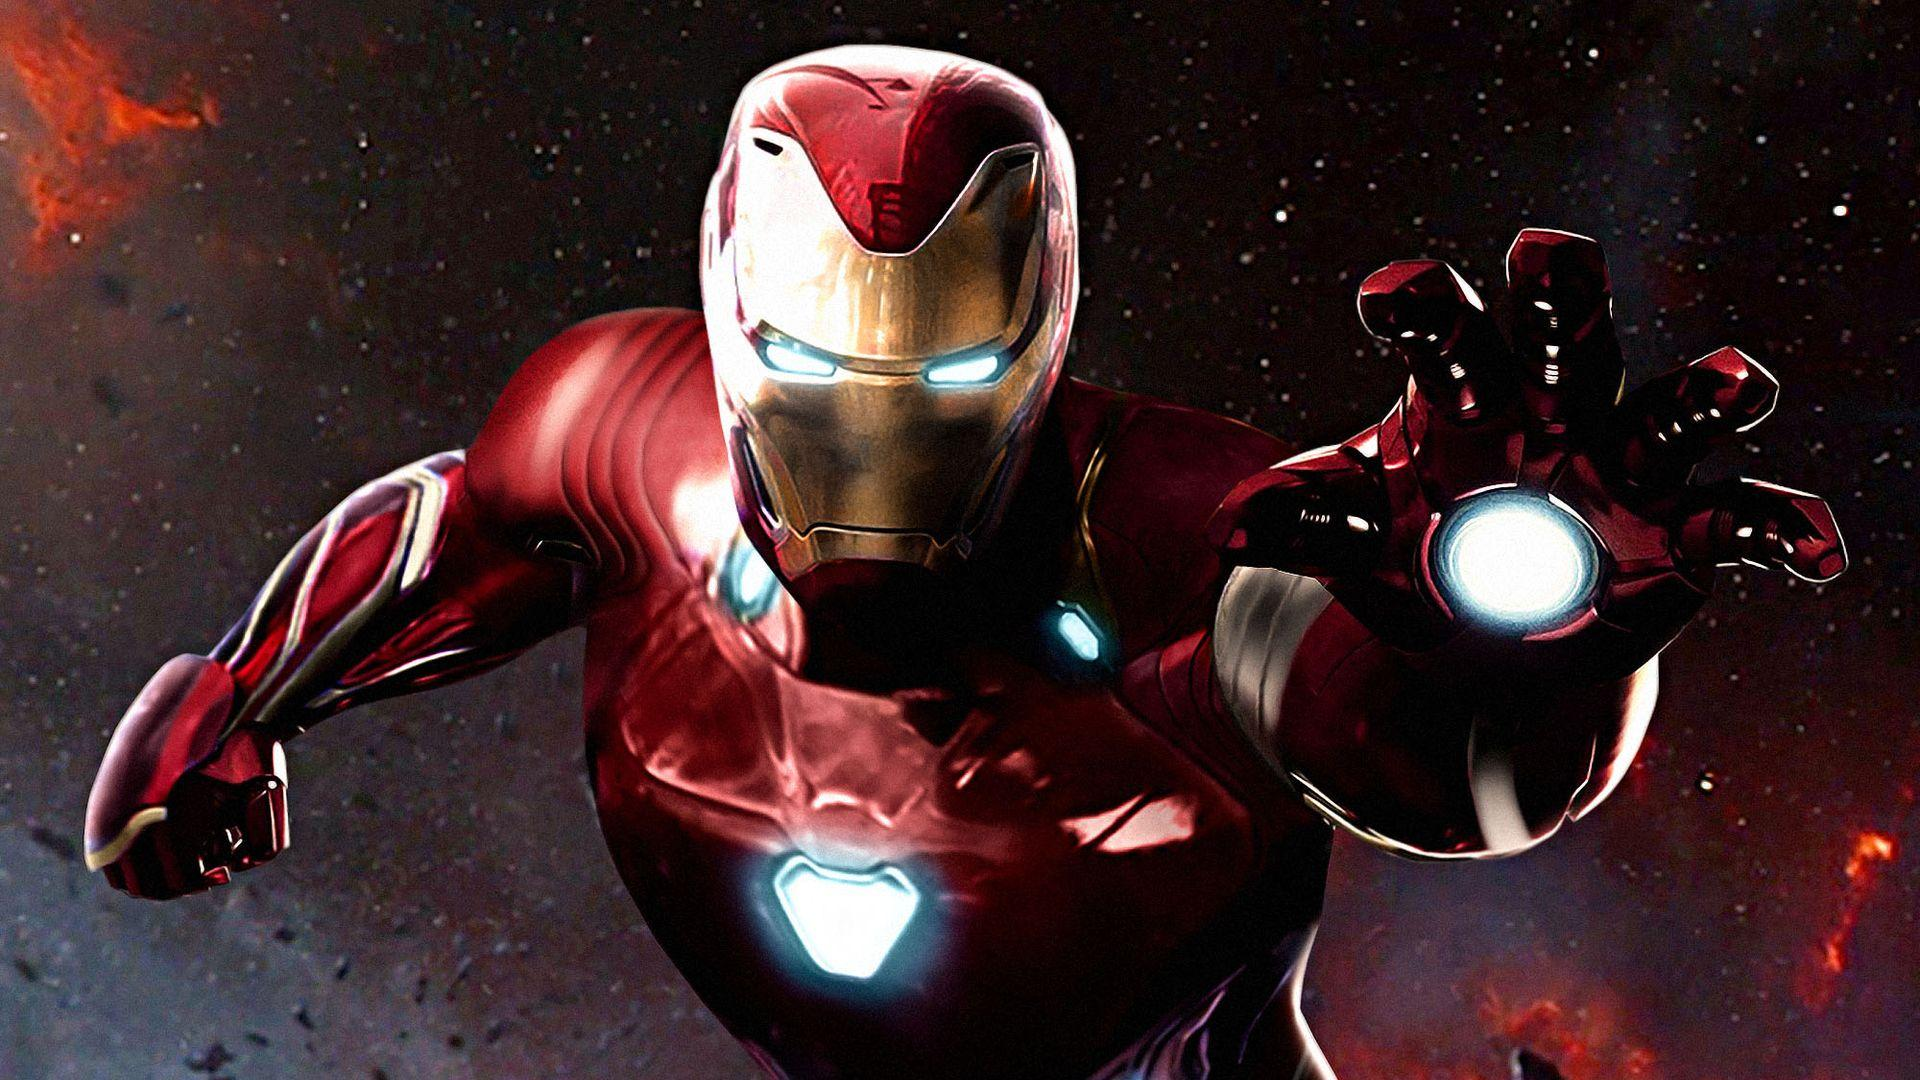 Iron Man Hd Wallpapers 1080p Wallpaper Cave